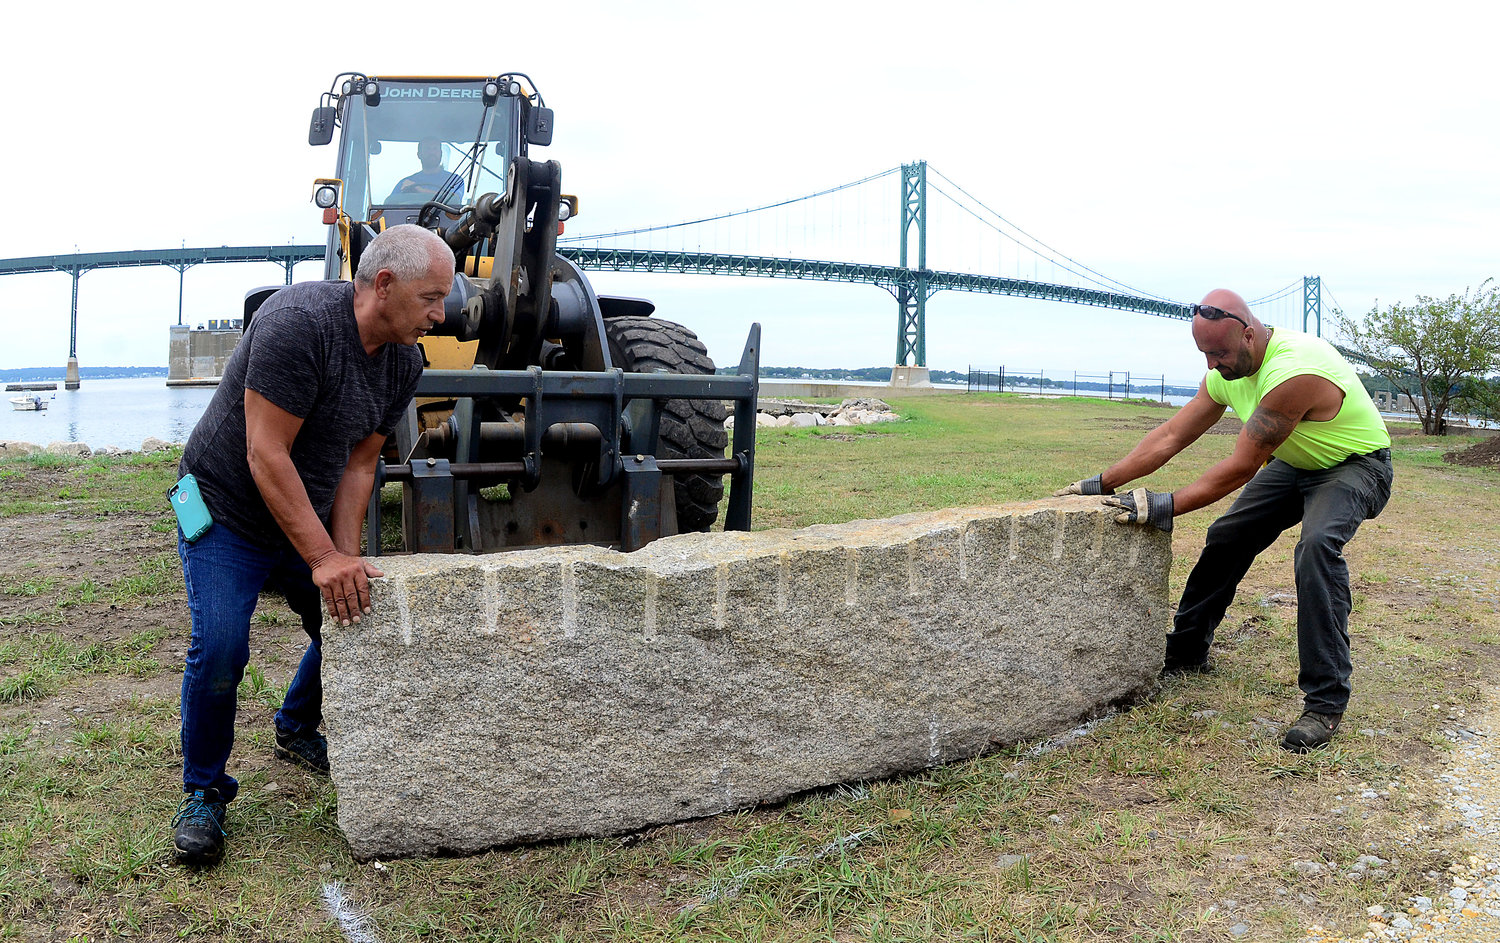 Backhoe operator Ryan January lifts a granite stone at Mt. Hope Park as Paul Rodrigues (left) and Mike Corvin guide it into place. The three men work for the Department of Public Works, which is getting the new waterfront park prepared for its opening to the public.